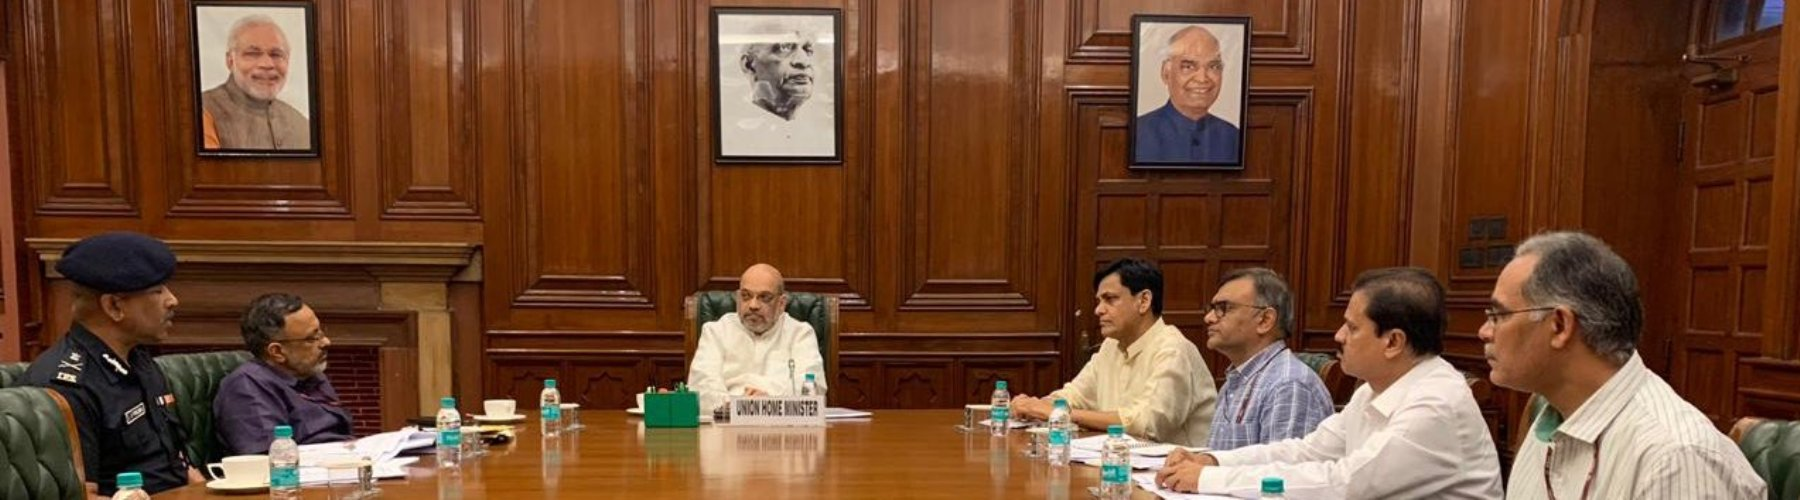 UNION HOME MINISTER SHRI AMIT SHAH CHAIRS A HIGH LEVEL MEETING IN NEW DELHI TO REVIEW THE CURRENT FLOOD SITUATION ON JULY 13, 2019. MINISTER OF STATE SHRI NITYANAND RAI, HOME SECRETARY SHRI RAJIV GAUBA AND OTHER OFFICIALS CAN BE SEEN.